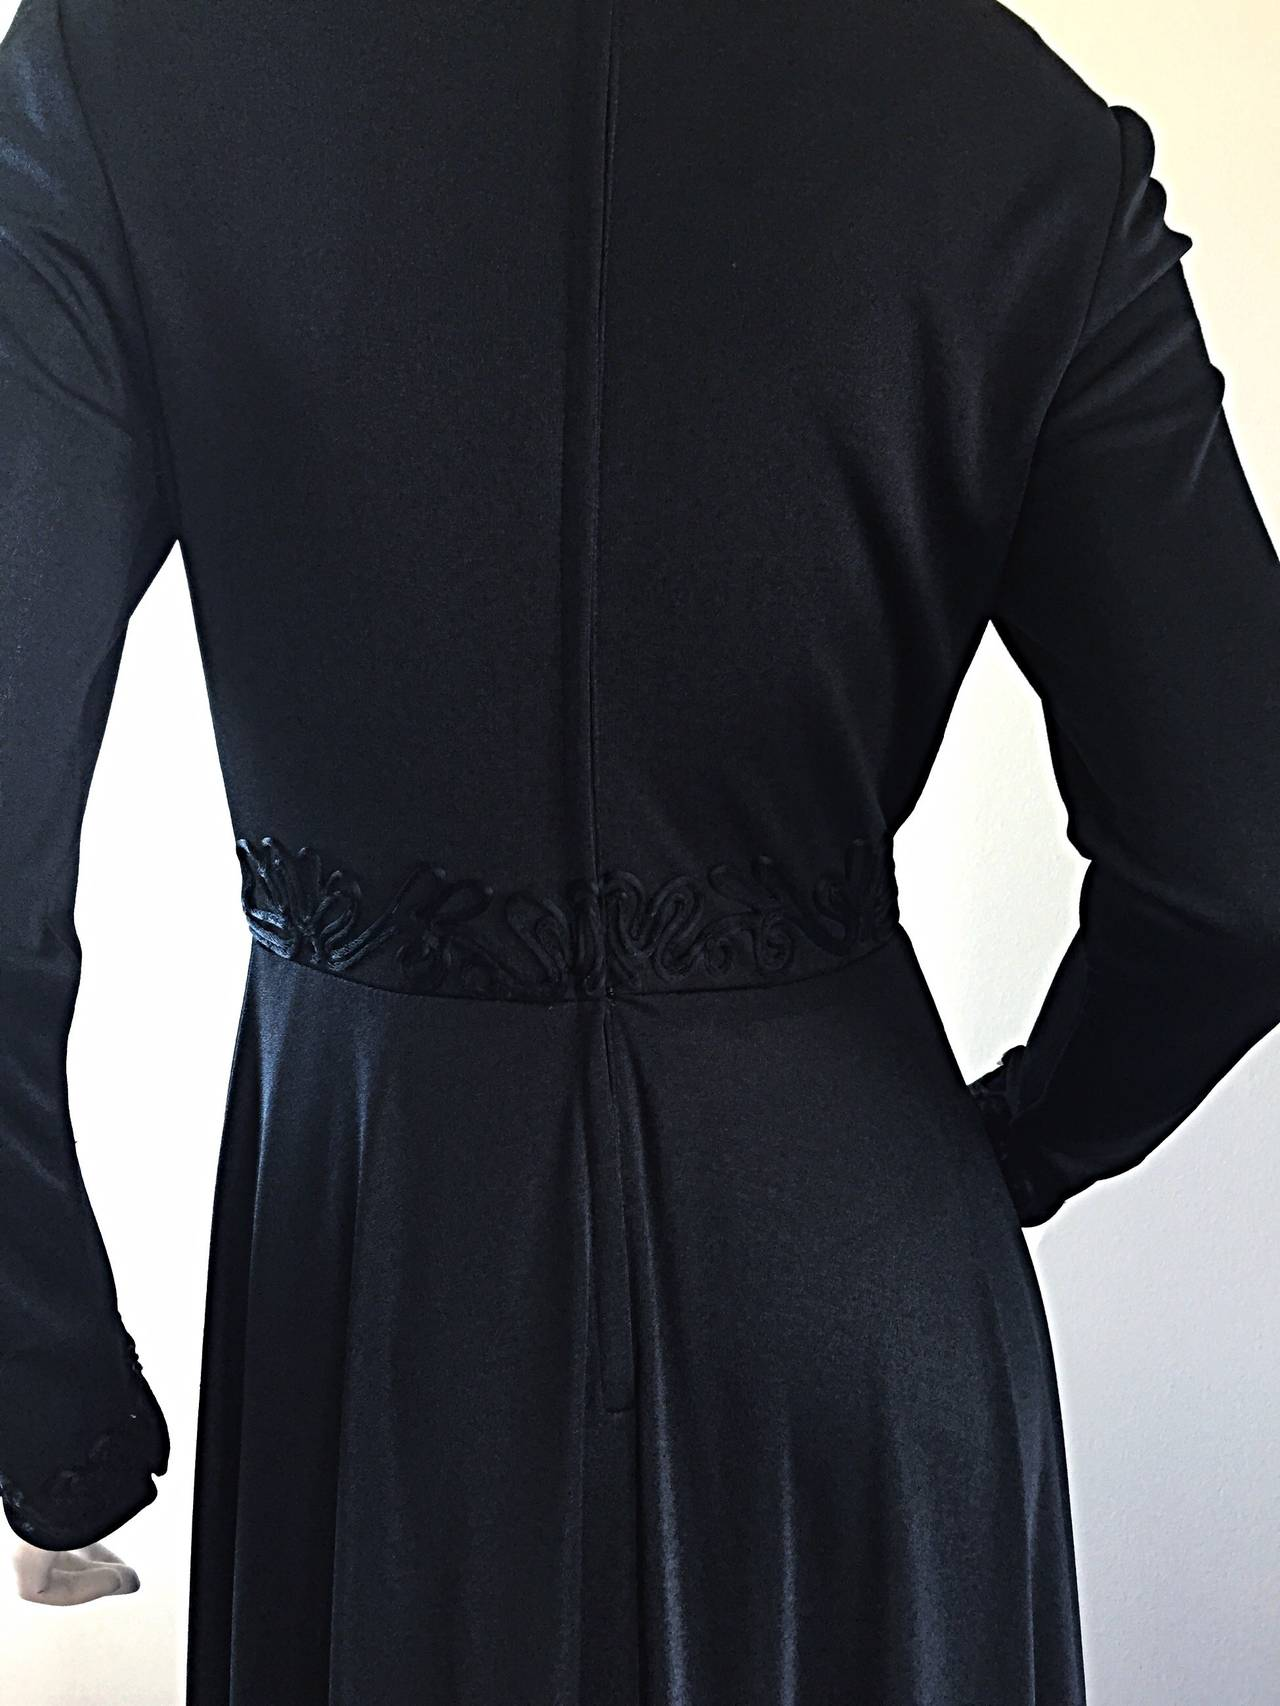 Vintage Jack Bryan Black Jersey Maxi Dress w/ Intricate Embroidery 1970s 70s 7